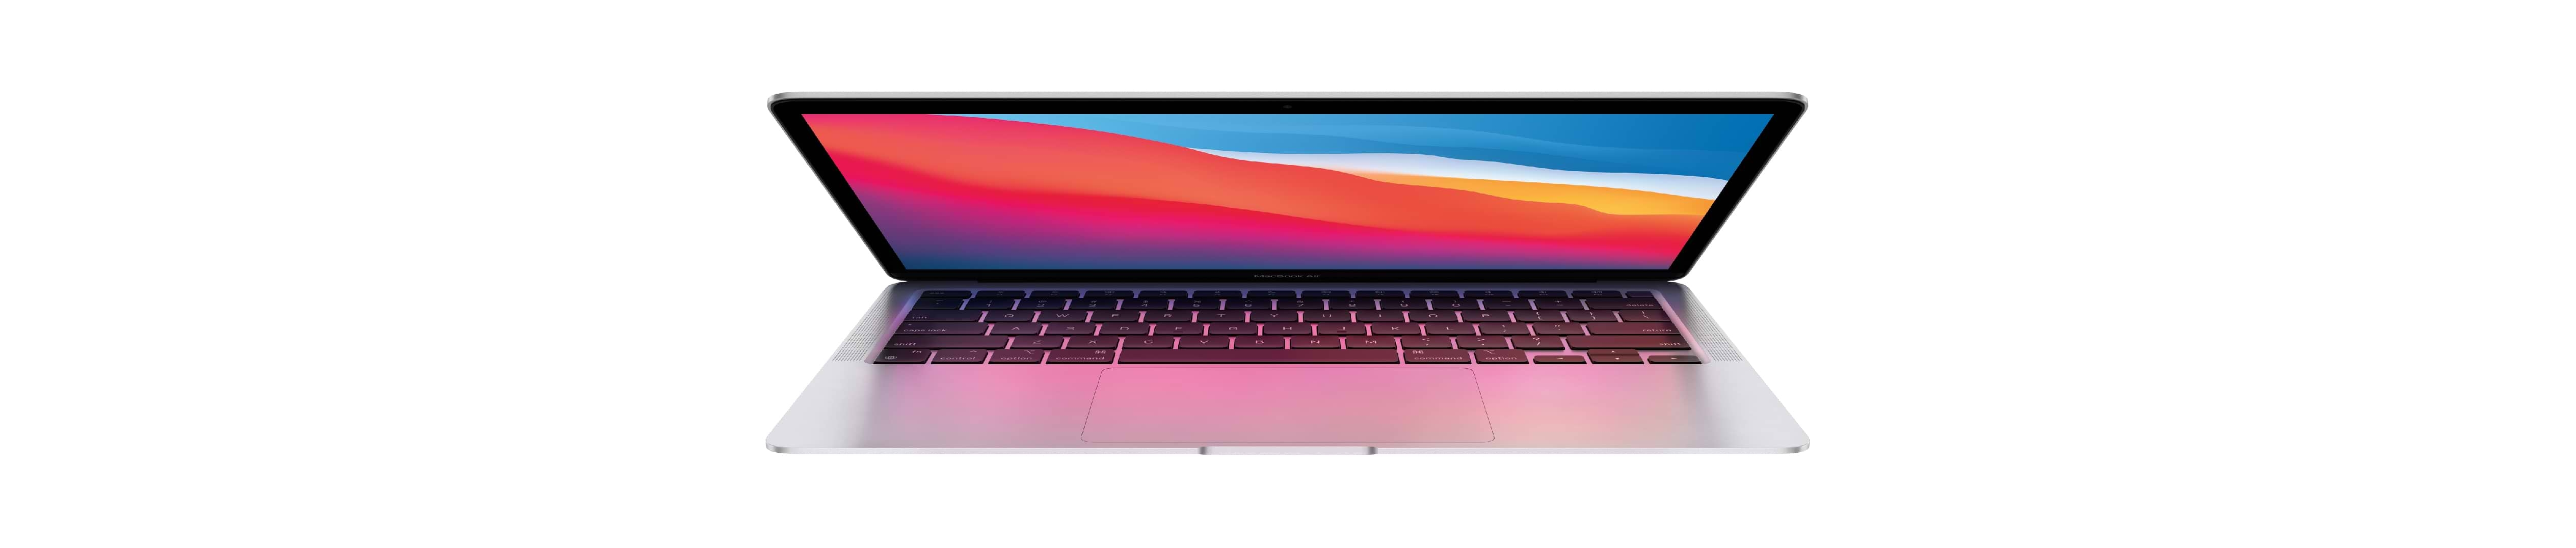 בחרו את ה-MacBook Air שלכם